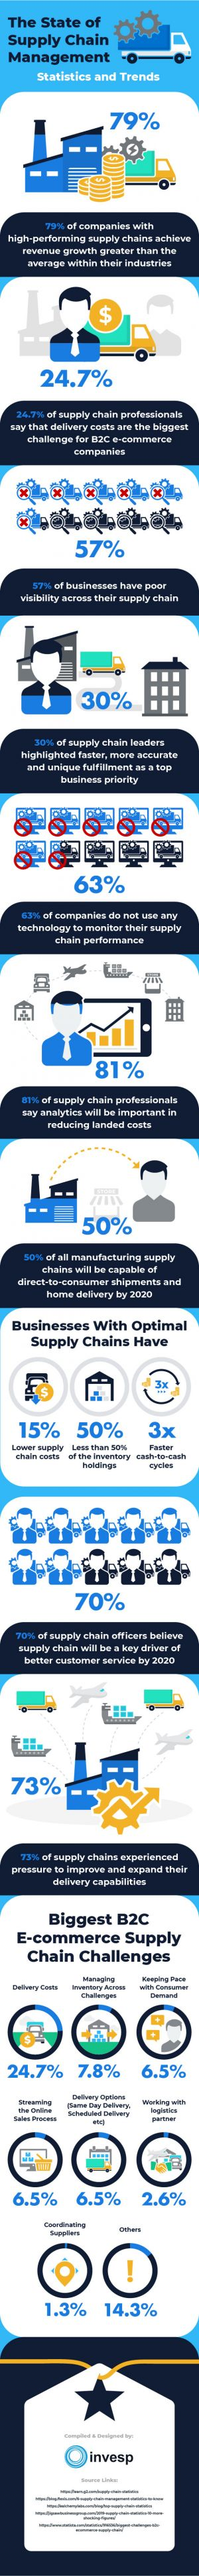 How Important Are Supply Chains to Your Business?